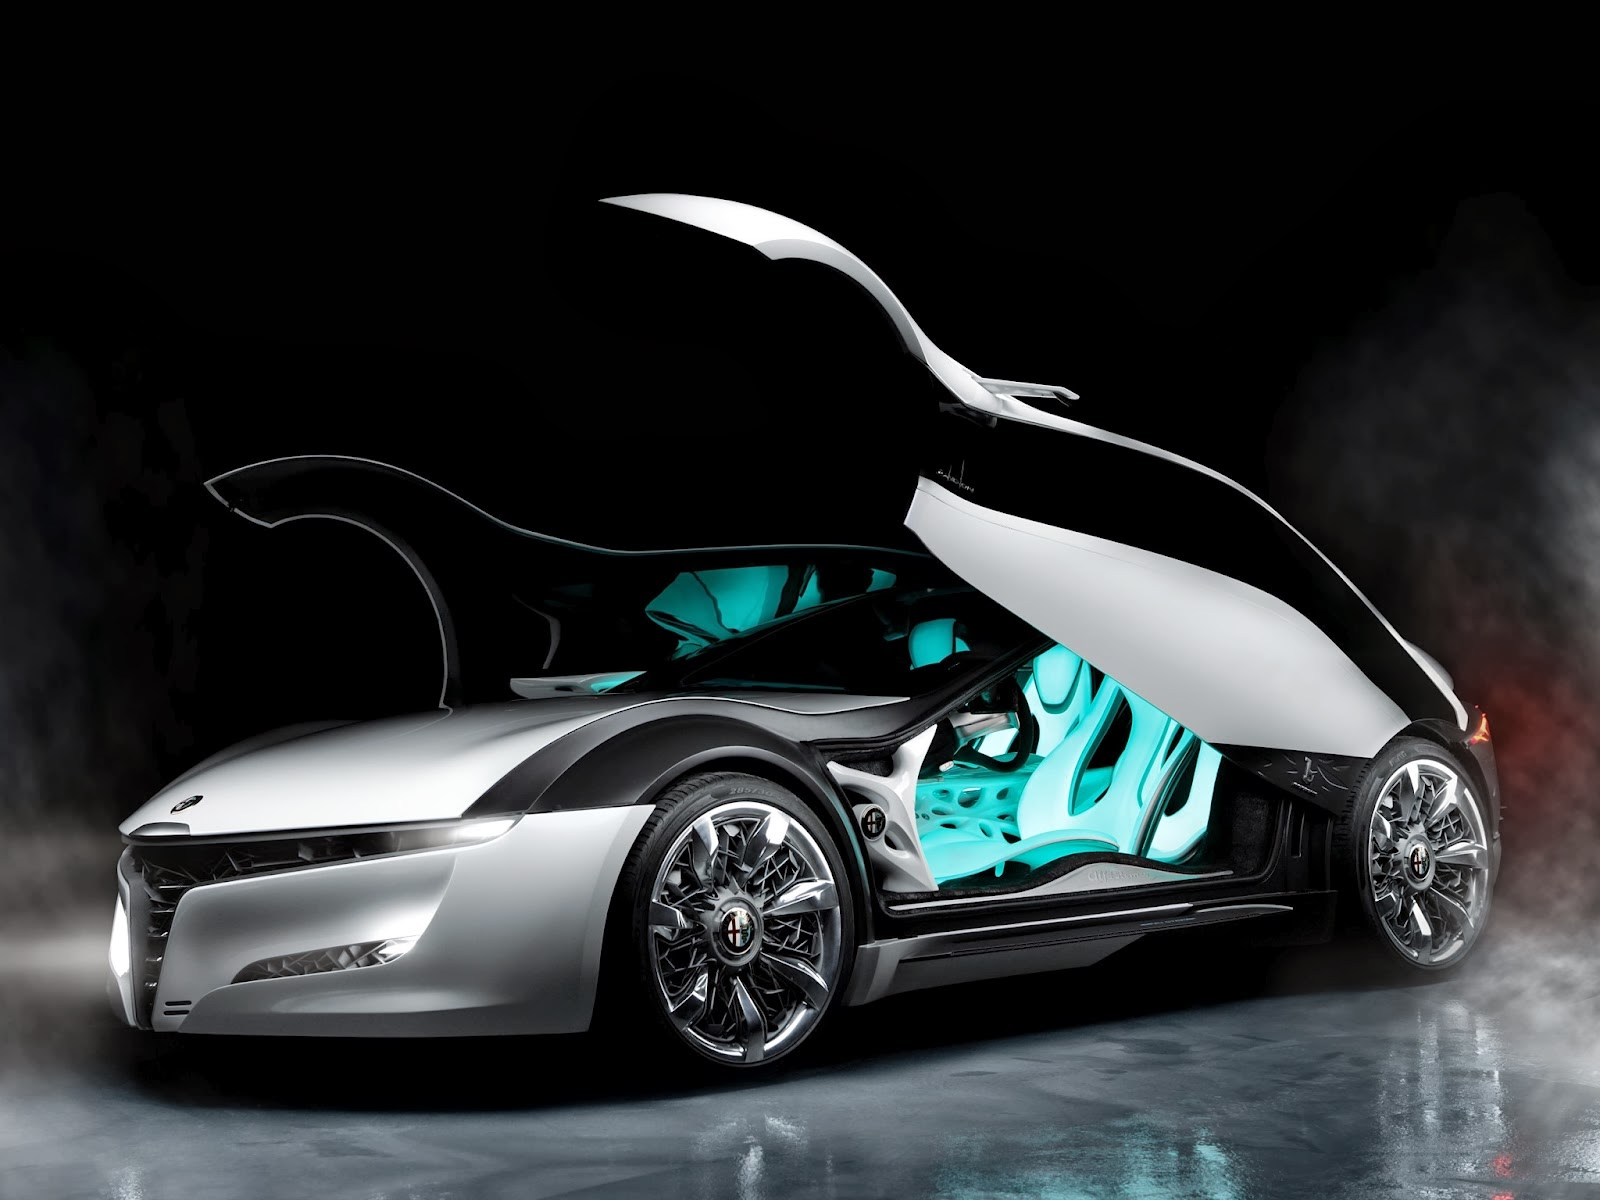 Amazing car wallpapers hd my world - Future cars hd wallpapers ...